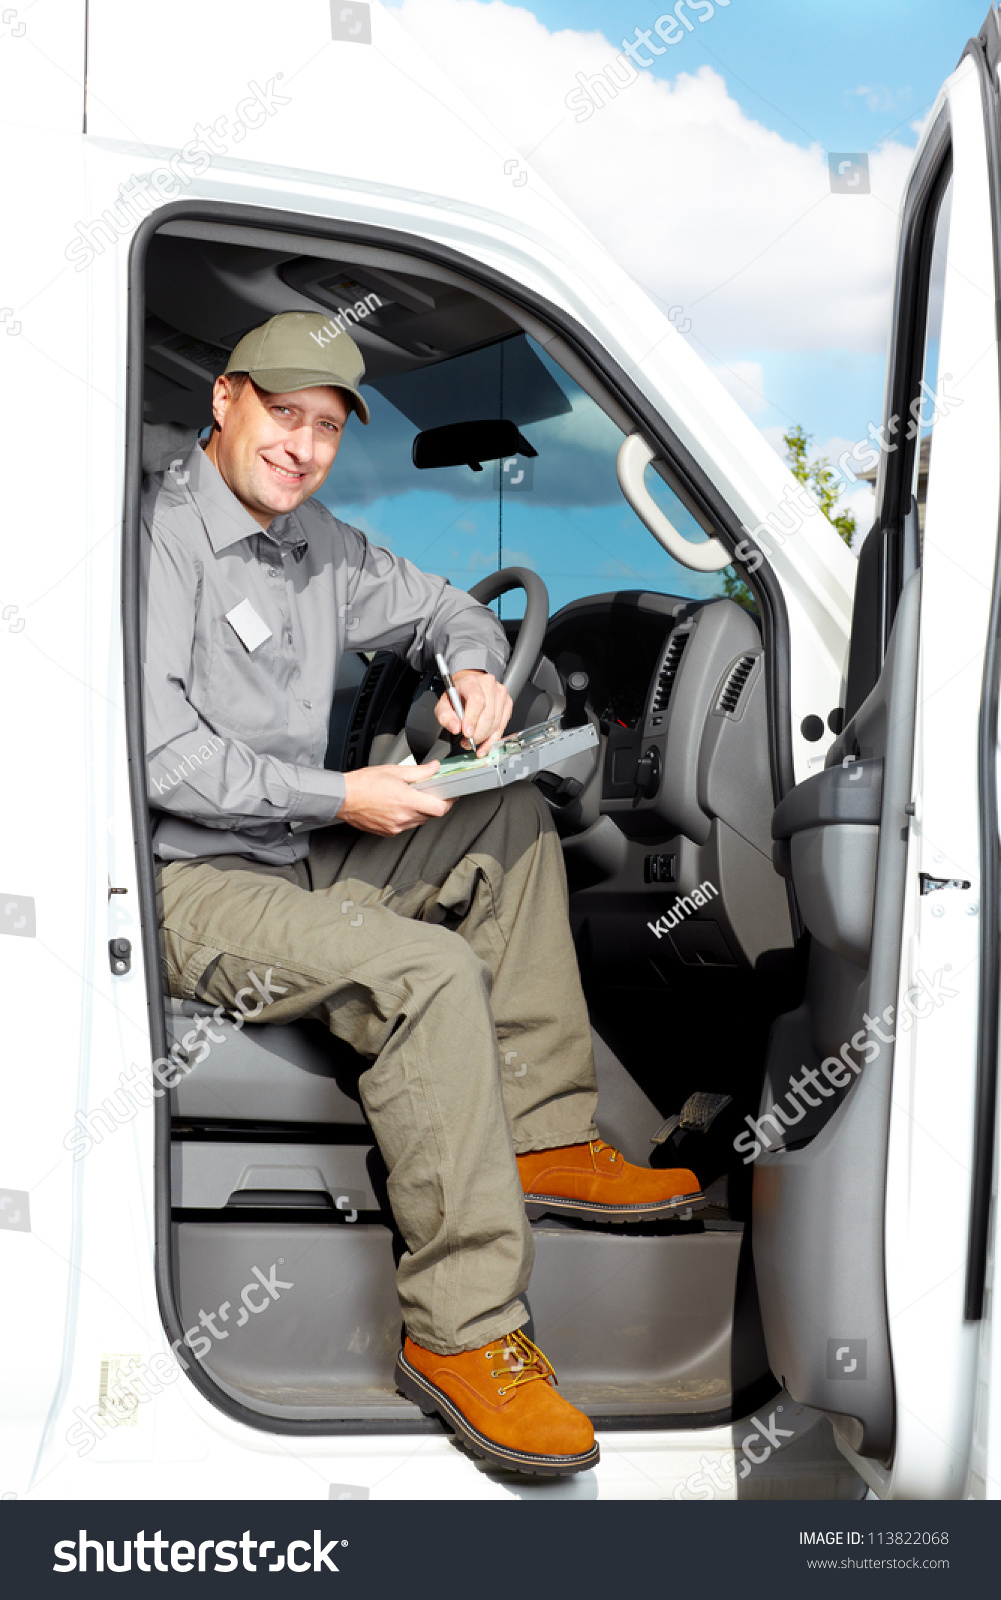 Smiling Truck Driver Car Delivery Cargo Stock Photo 113822068 ...